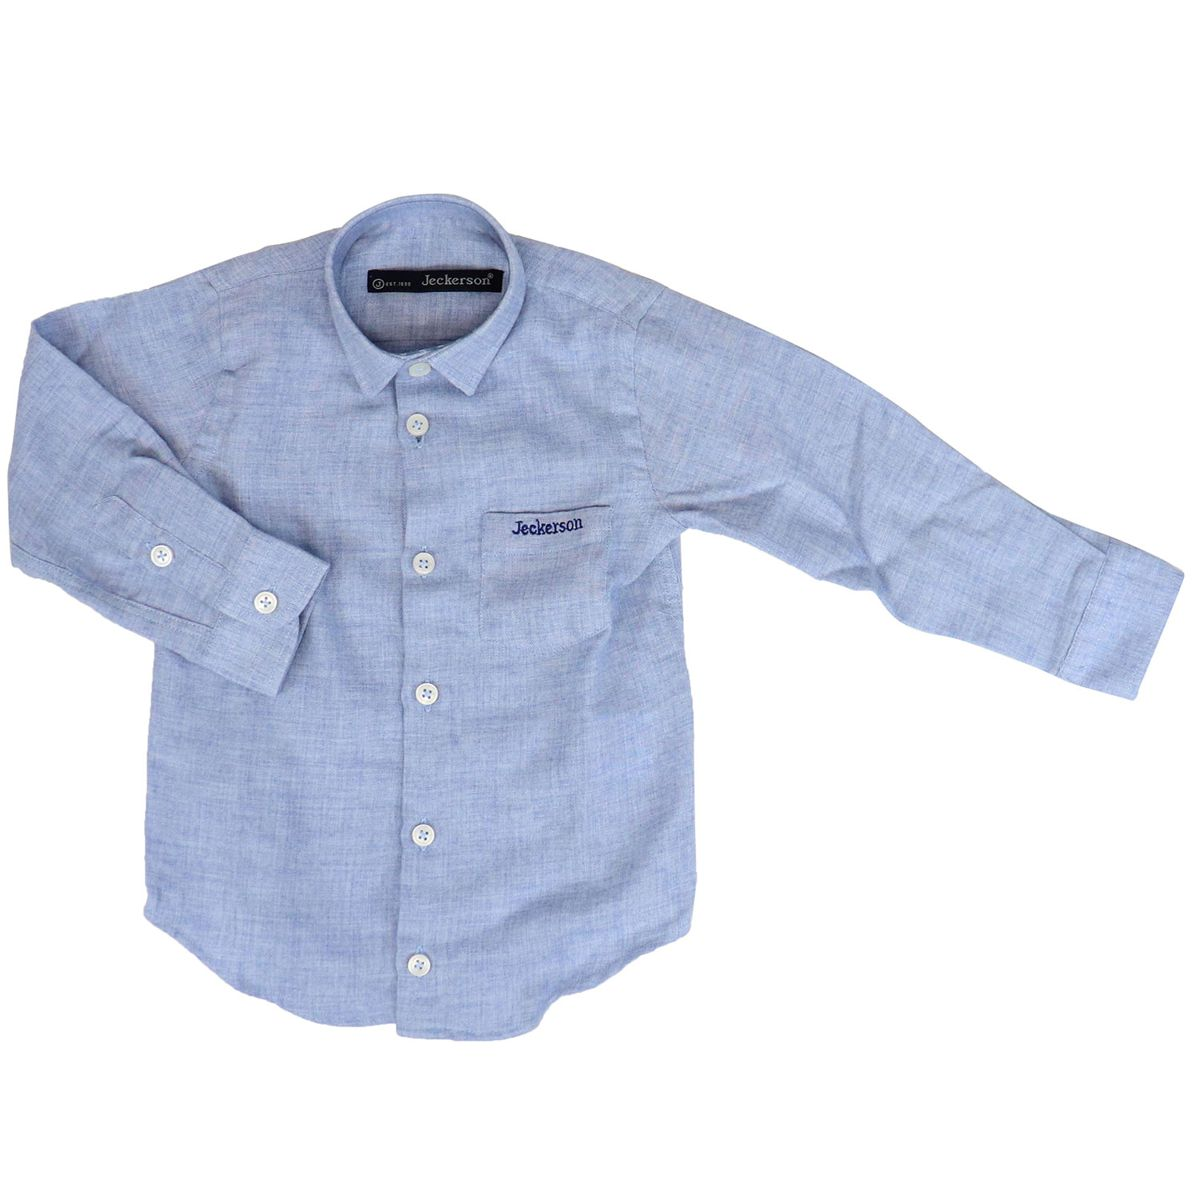 Wool blend shirt with embroidered logo Heavenly Jeckerson